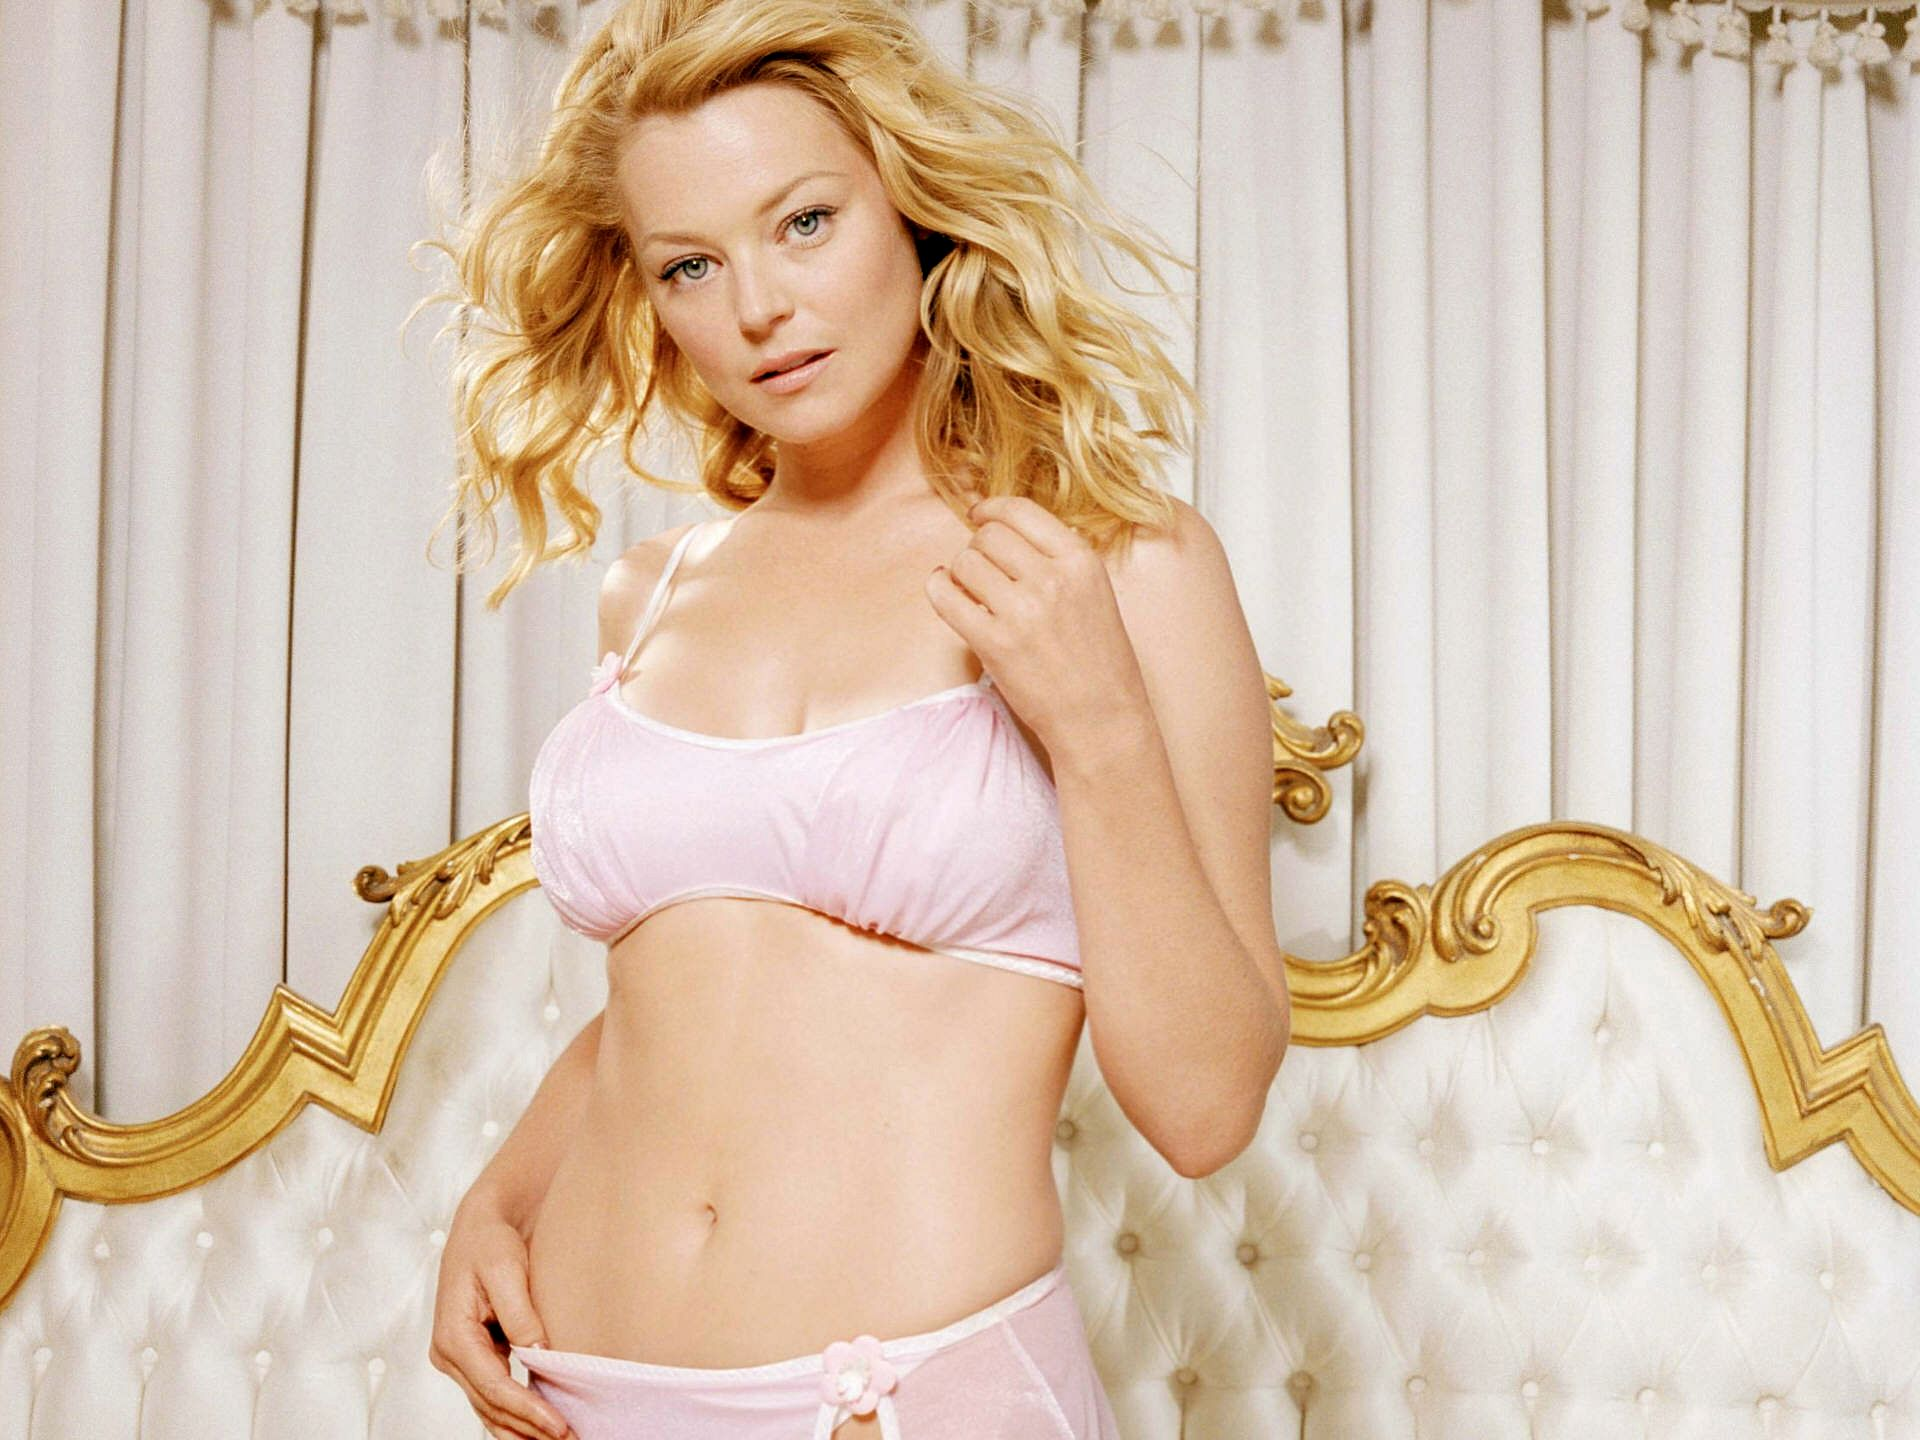 1920x1440 - Charlotte Ross Wallpapers 17